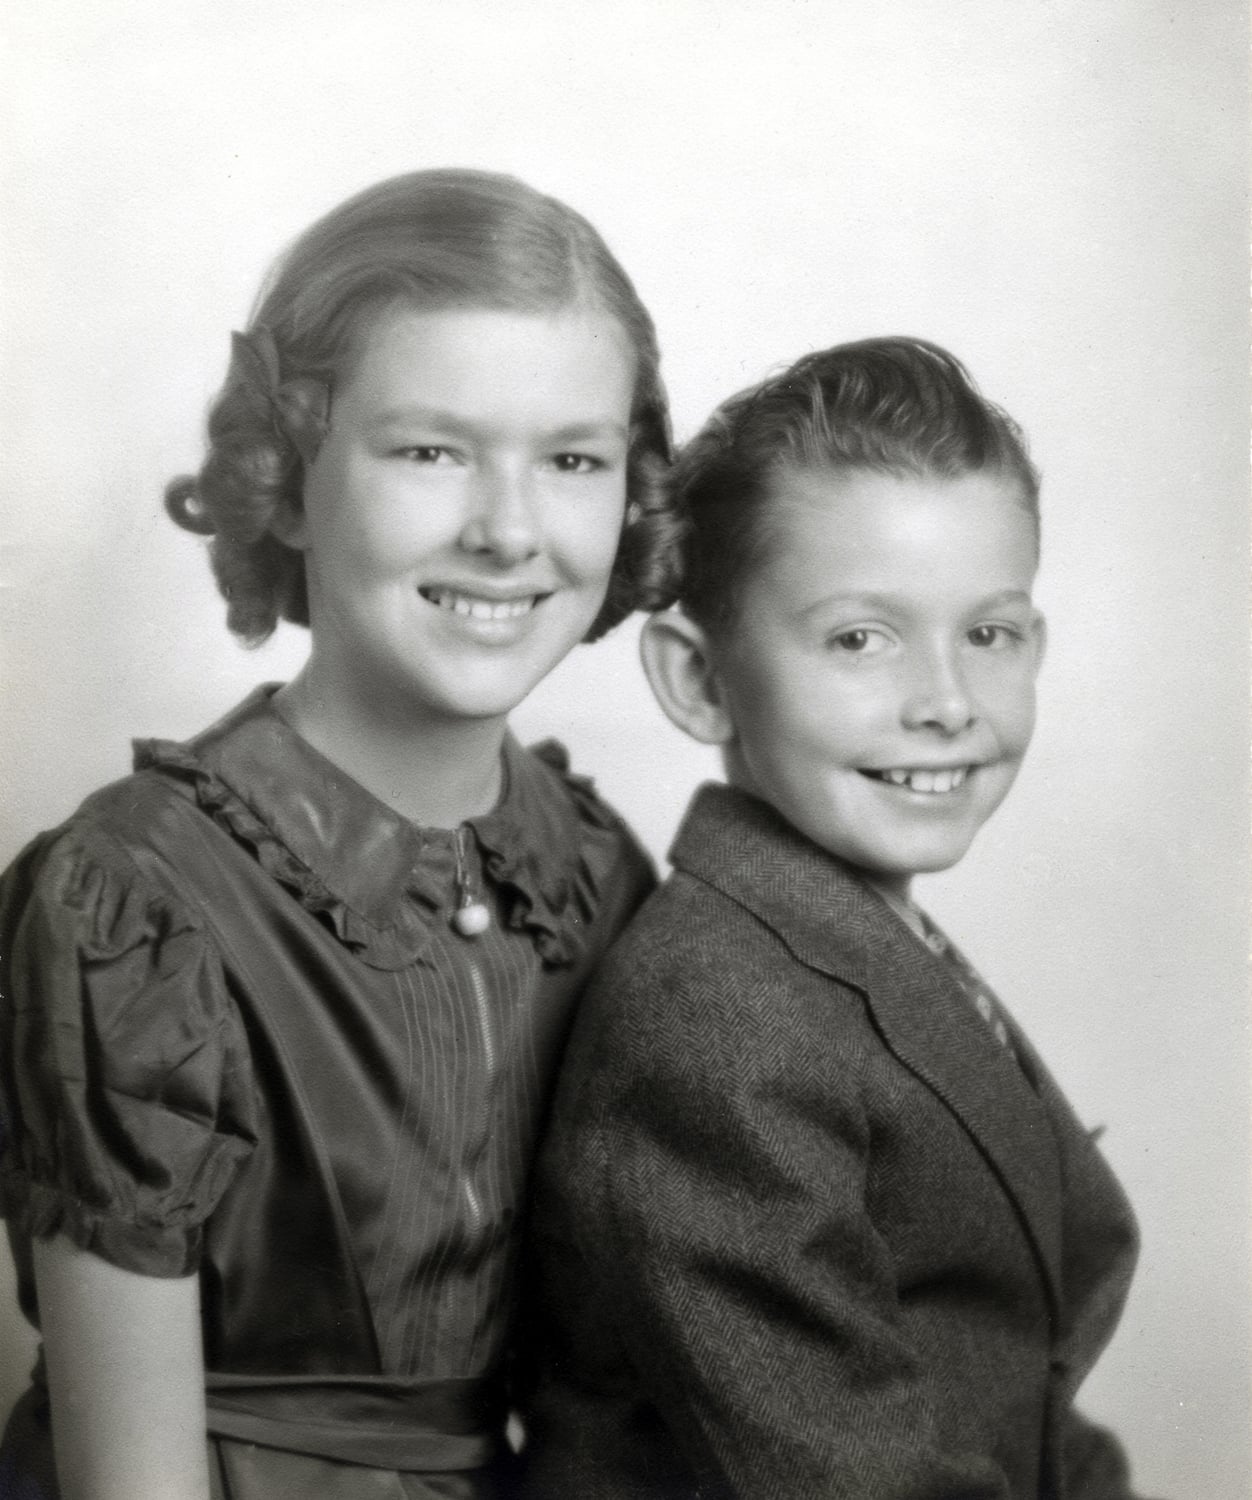 Shown here with her brother Joe. She was particularly fond of her younger brother,and shared his love of cars and racing.I believe this photo was taken when she was about 11. Joe died in his early 30s while our family was living in Buga, Colombia. Mom could not make it back for his funeral and I remember her crying for several days, feeling, I am sure, so very far away from the brother she had loved.